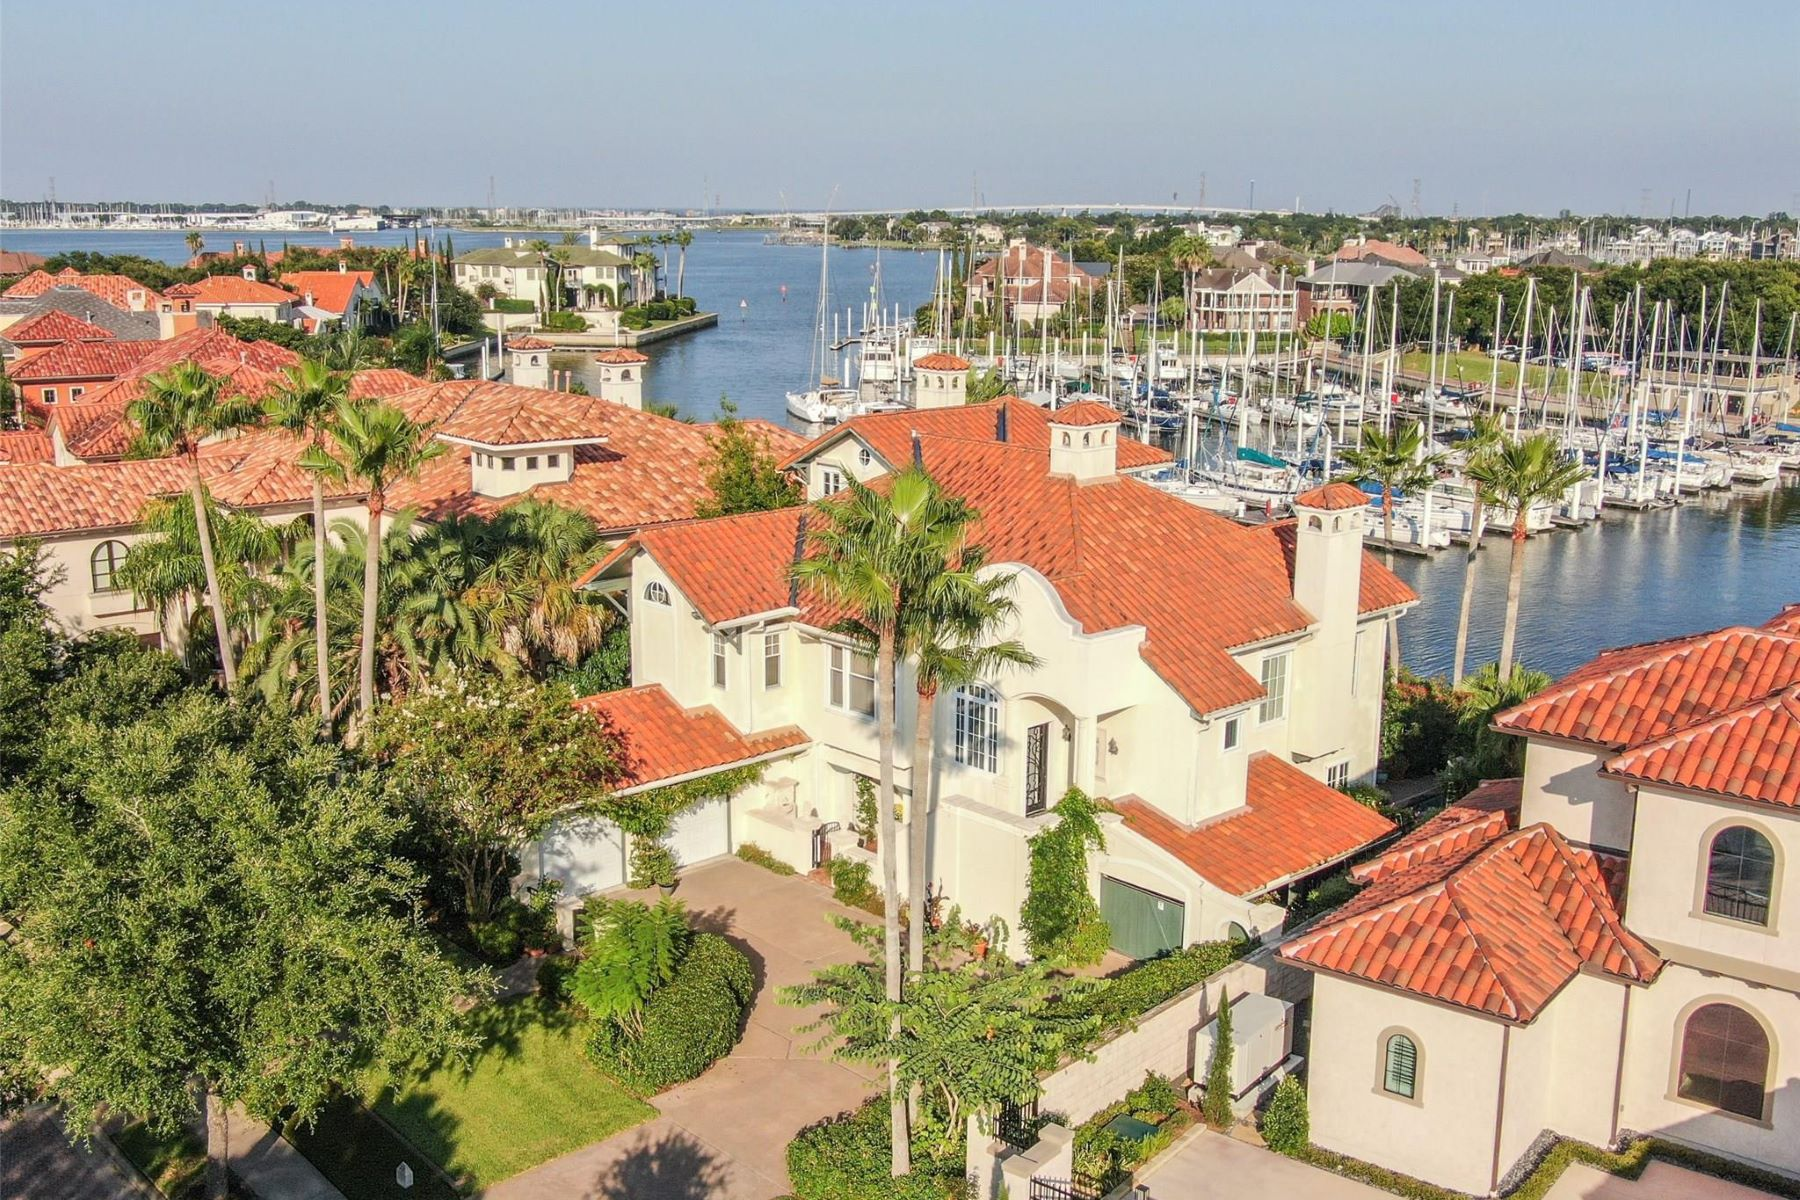 Single Family Homes for Sale at 23 Waterford Oaks Lane Kemah, Texas 77565 United States